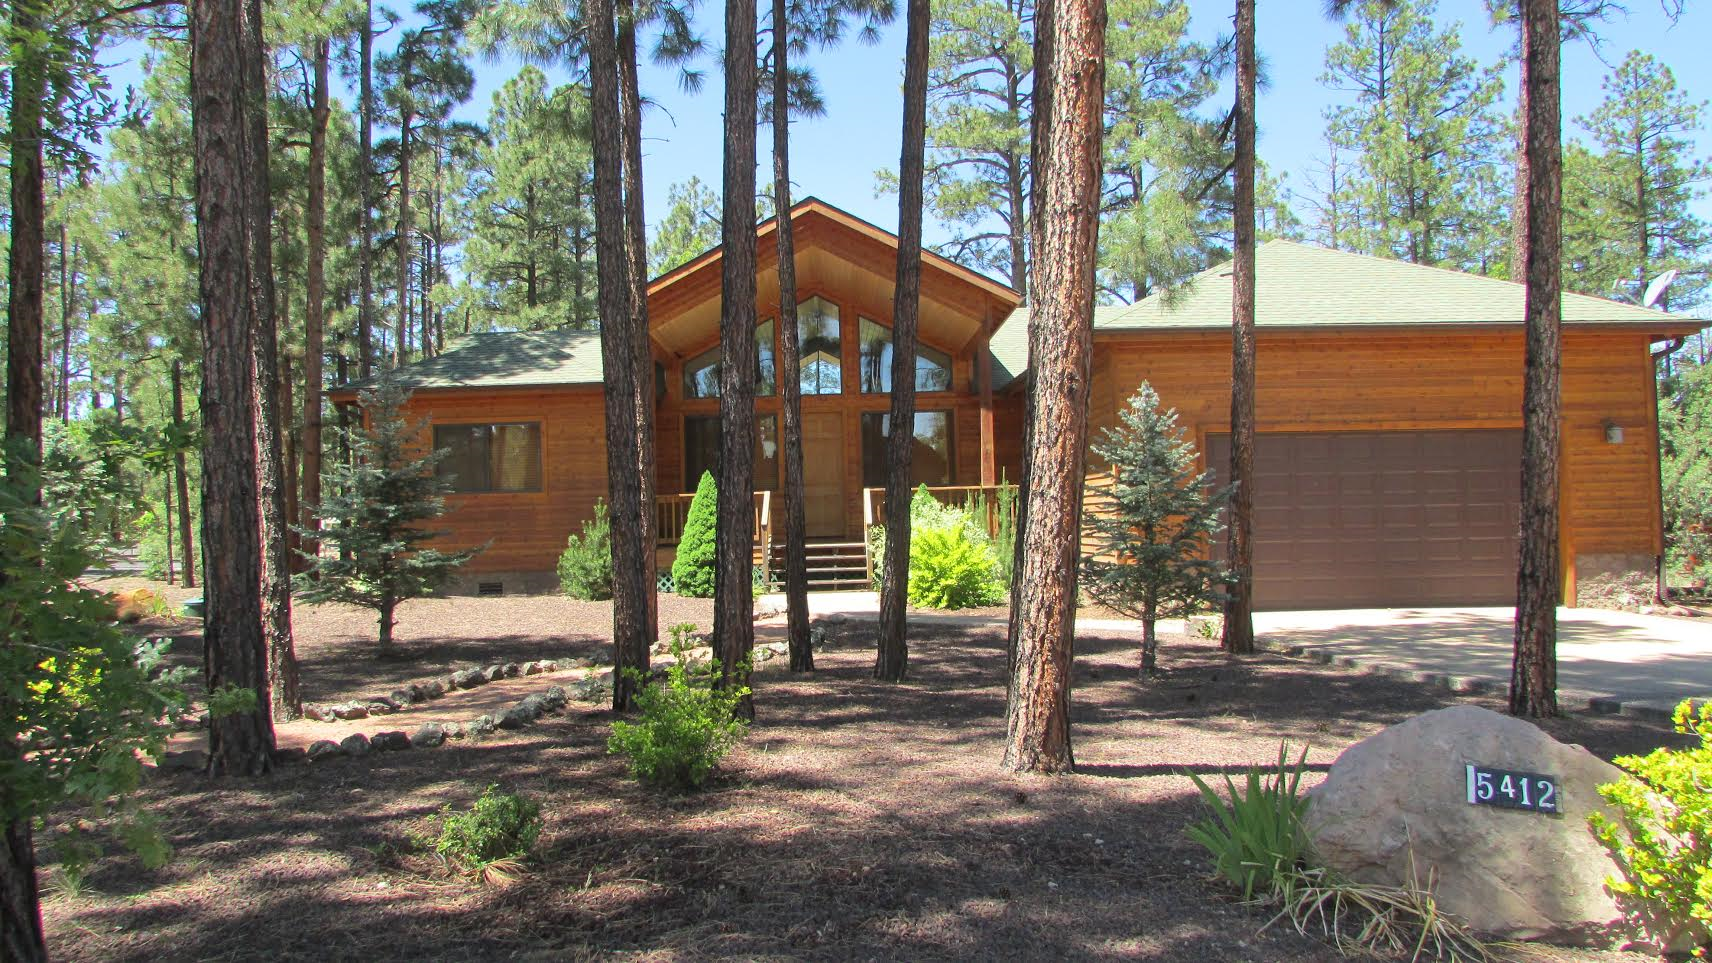 arizona pinetop als cabin rent cab sedona cottage in cheap small flagstaff cabins weekend rentals payson az